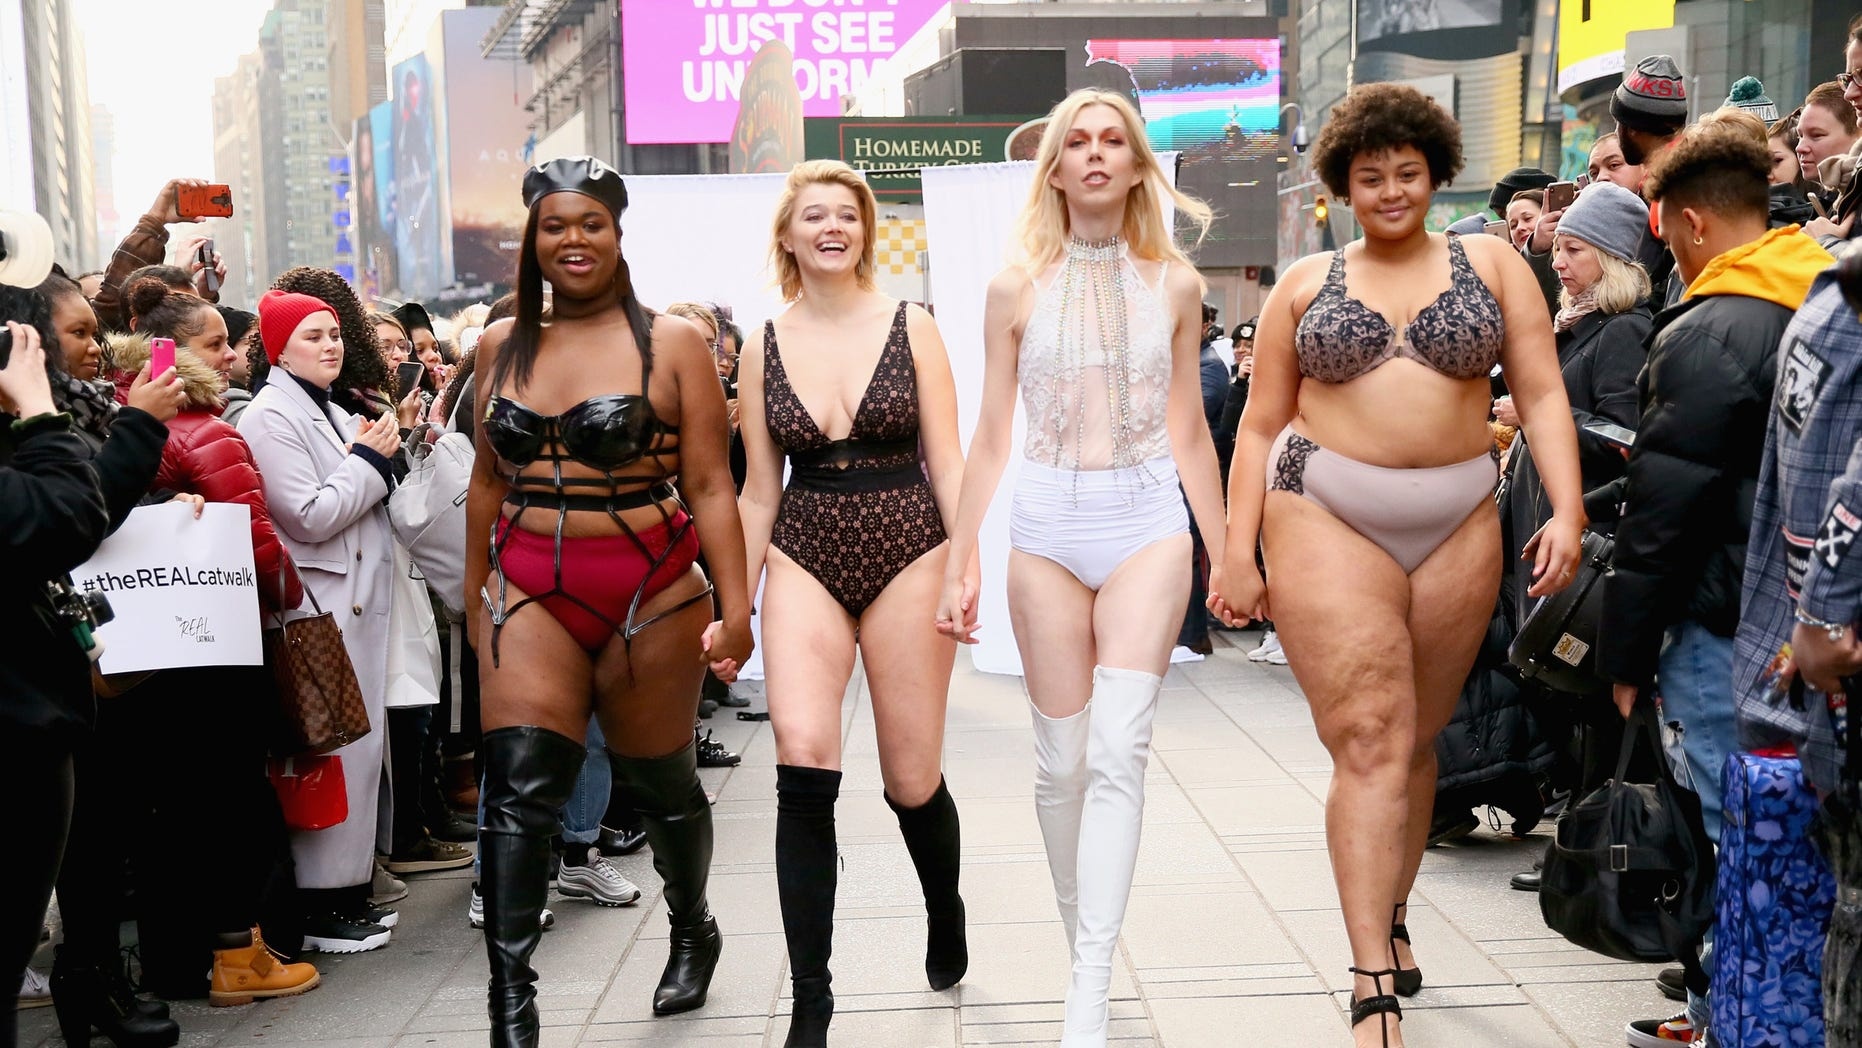 """""""A lot of people feel unattractive after watching it,"""" said the organizer of Saturday's """"Real Catwalk."""""""